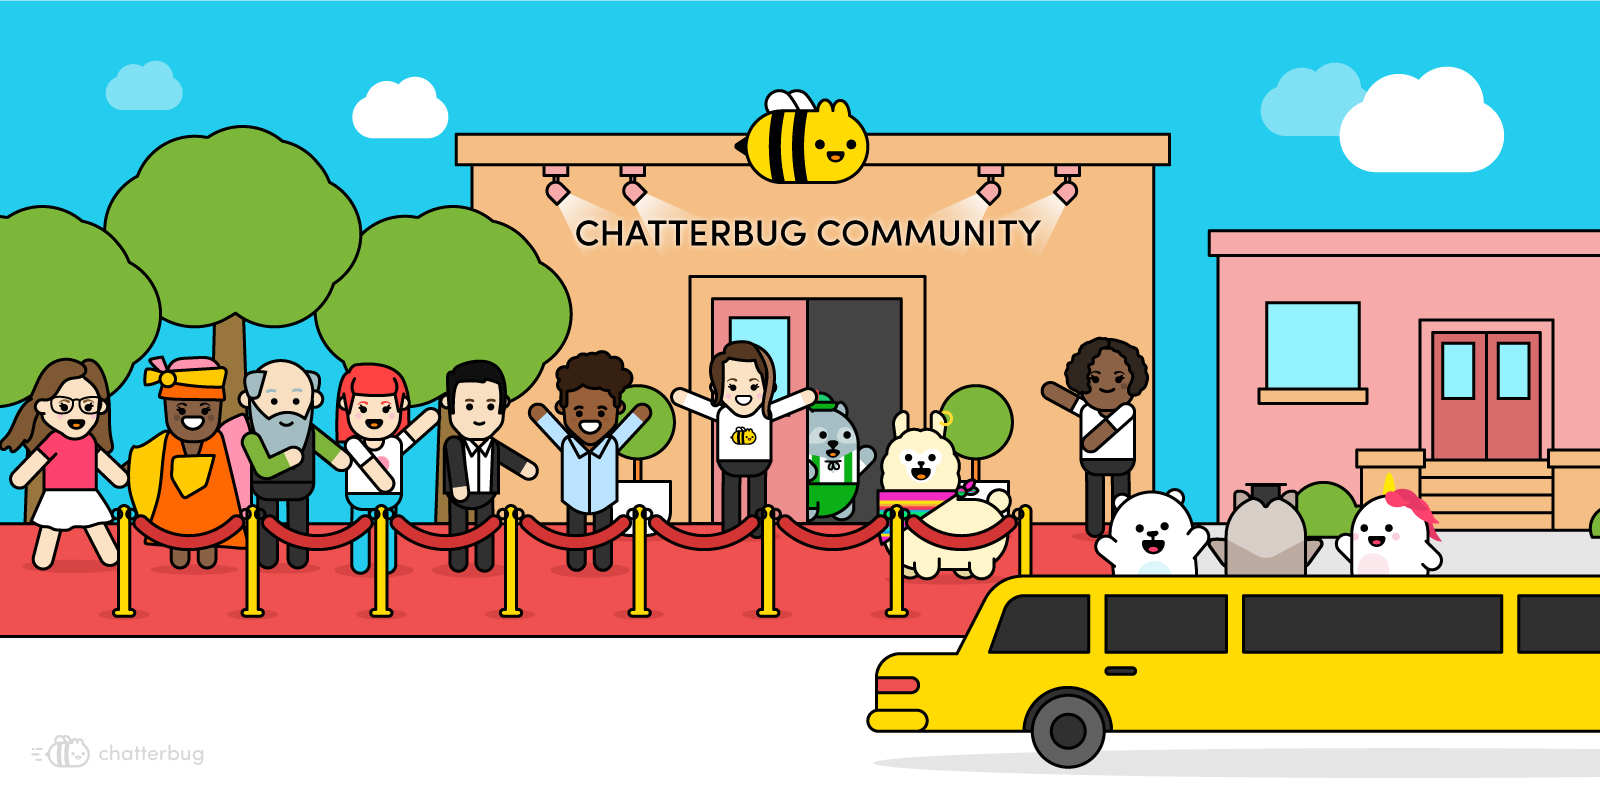 Introducing the Chatterbug Community Forum image